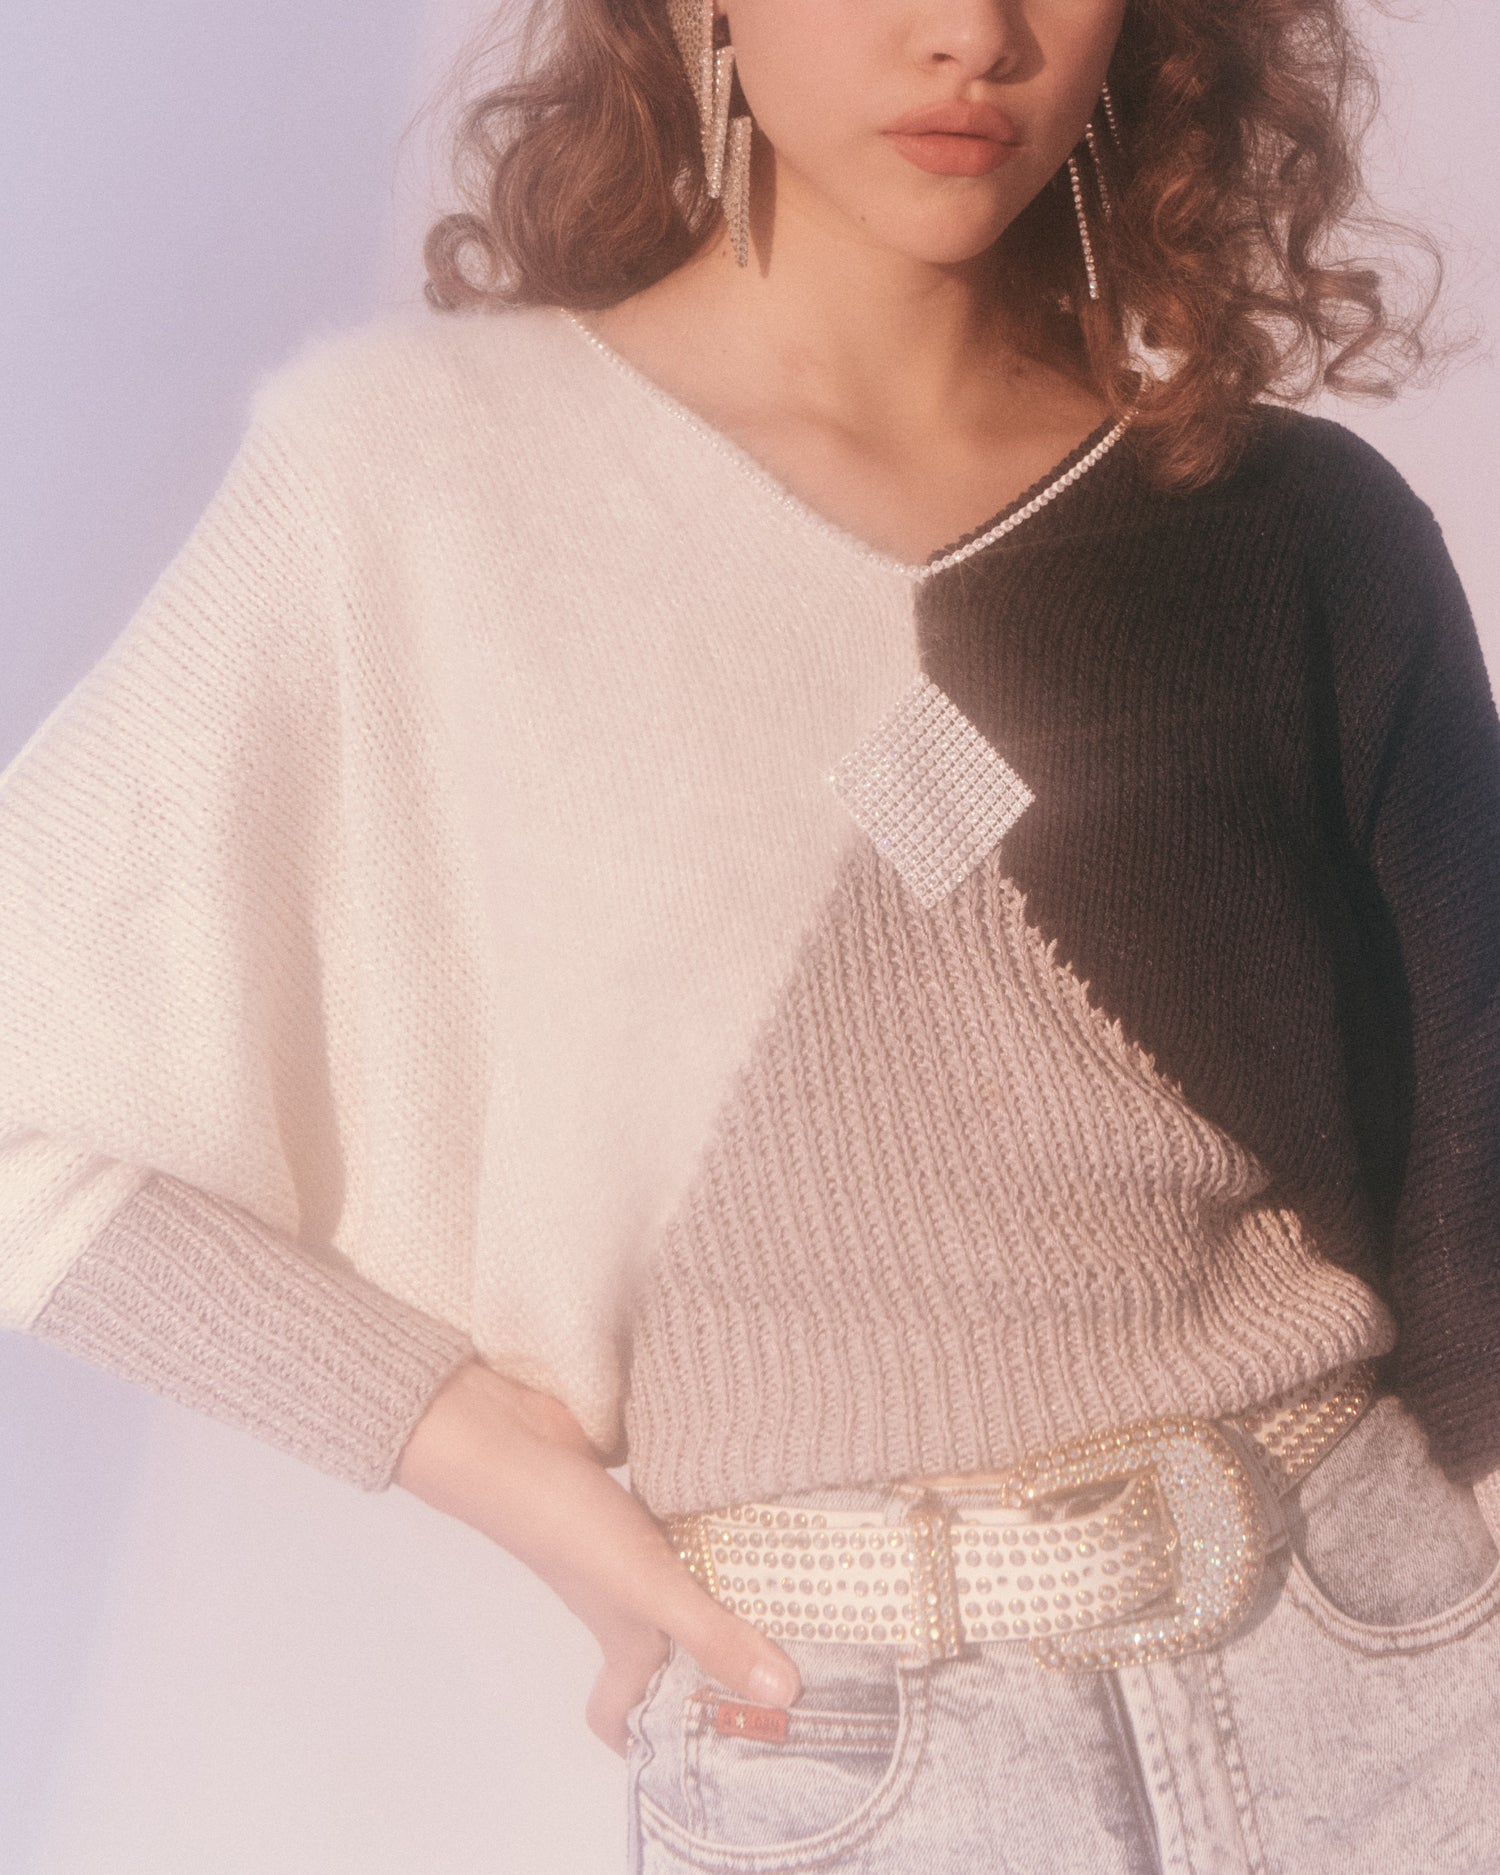 Rhinestone Mixed Media Sweater